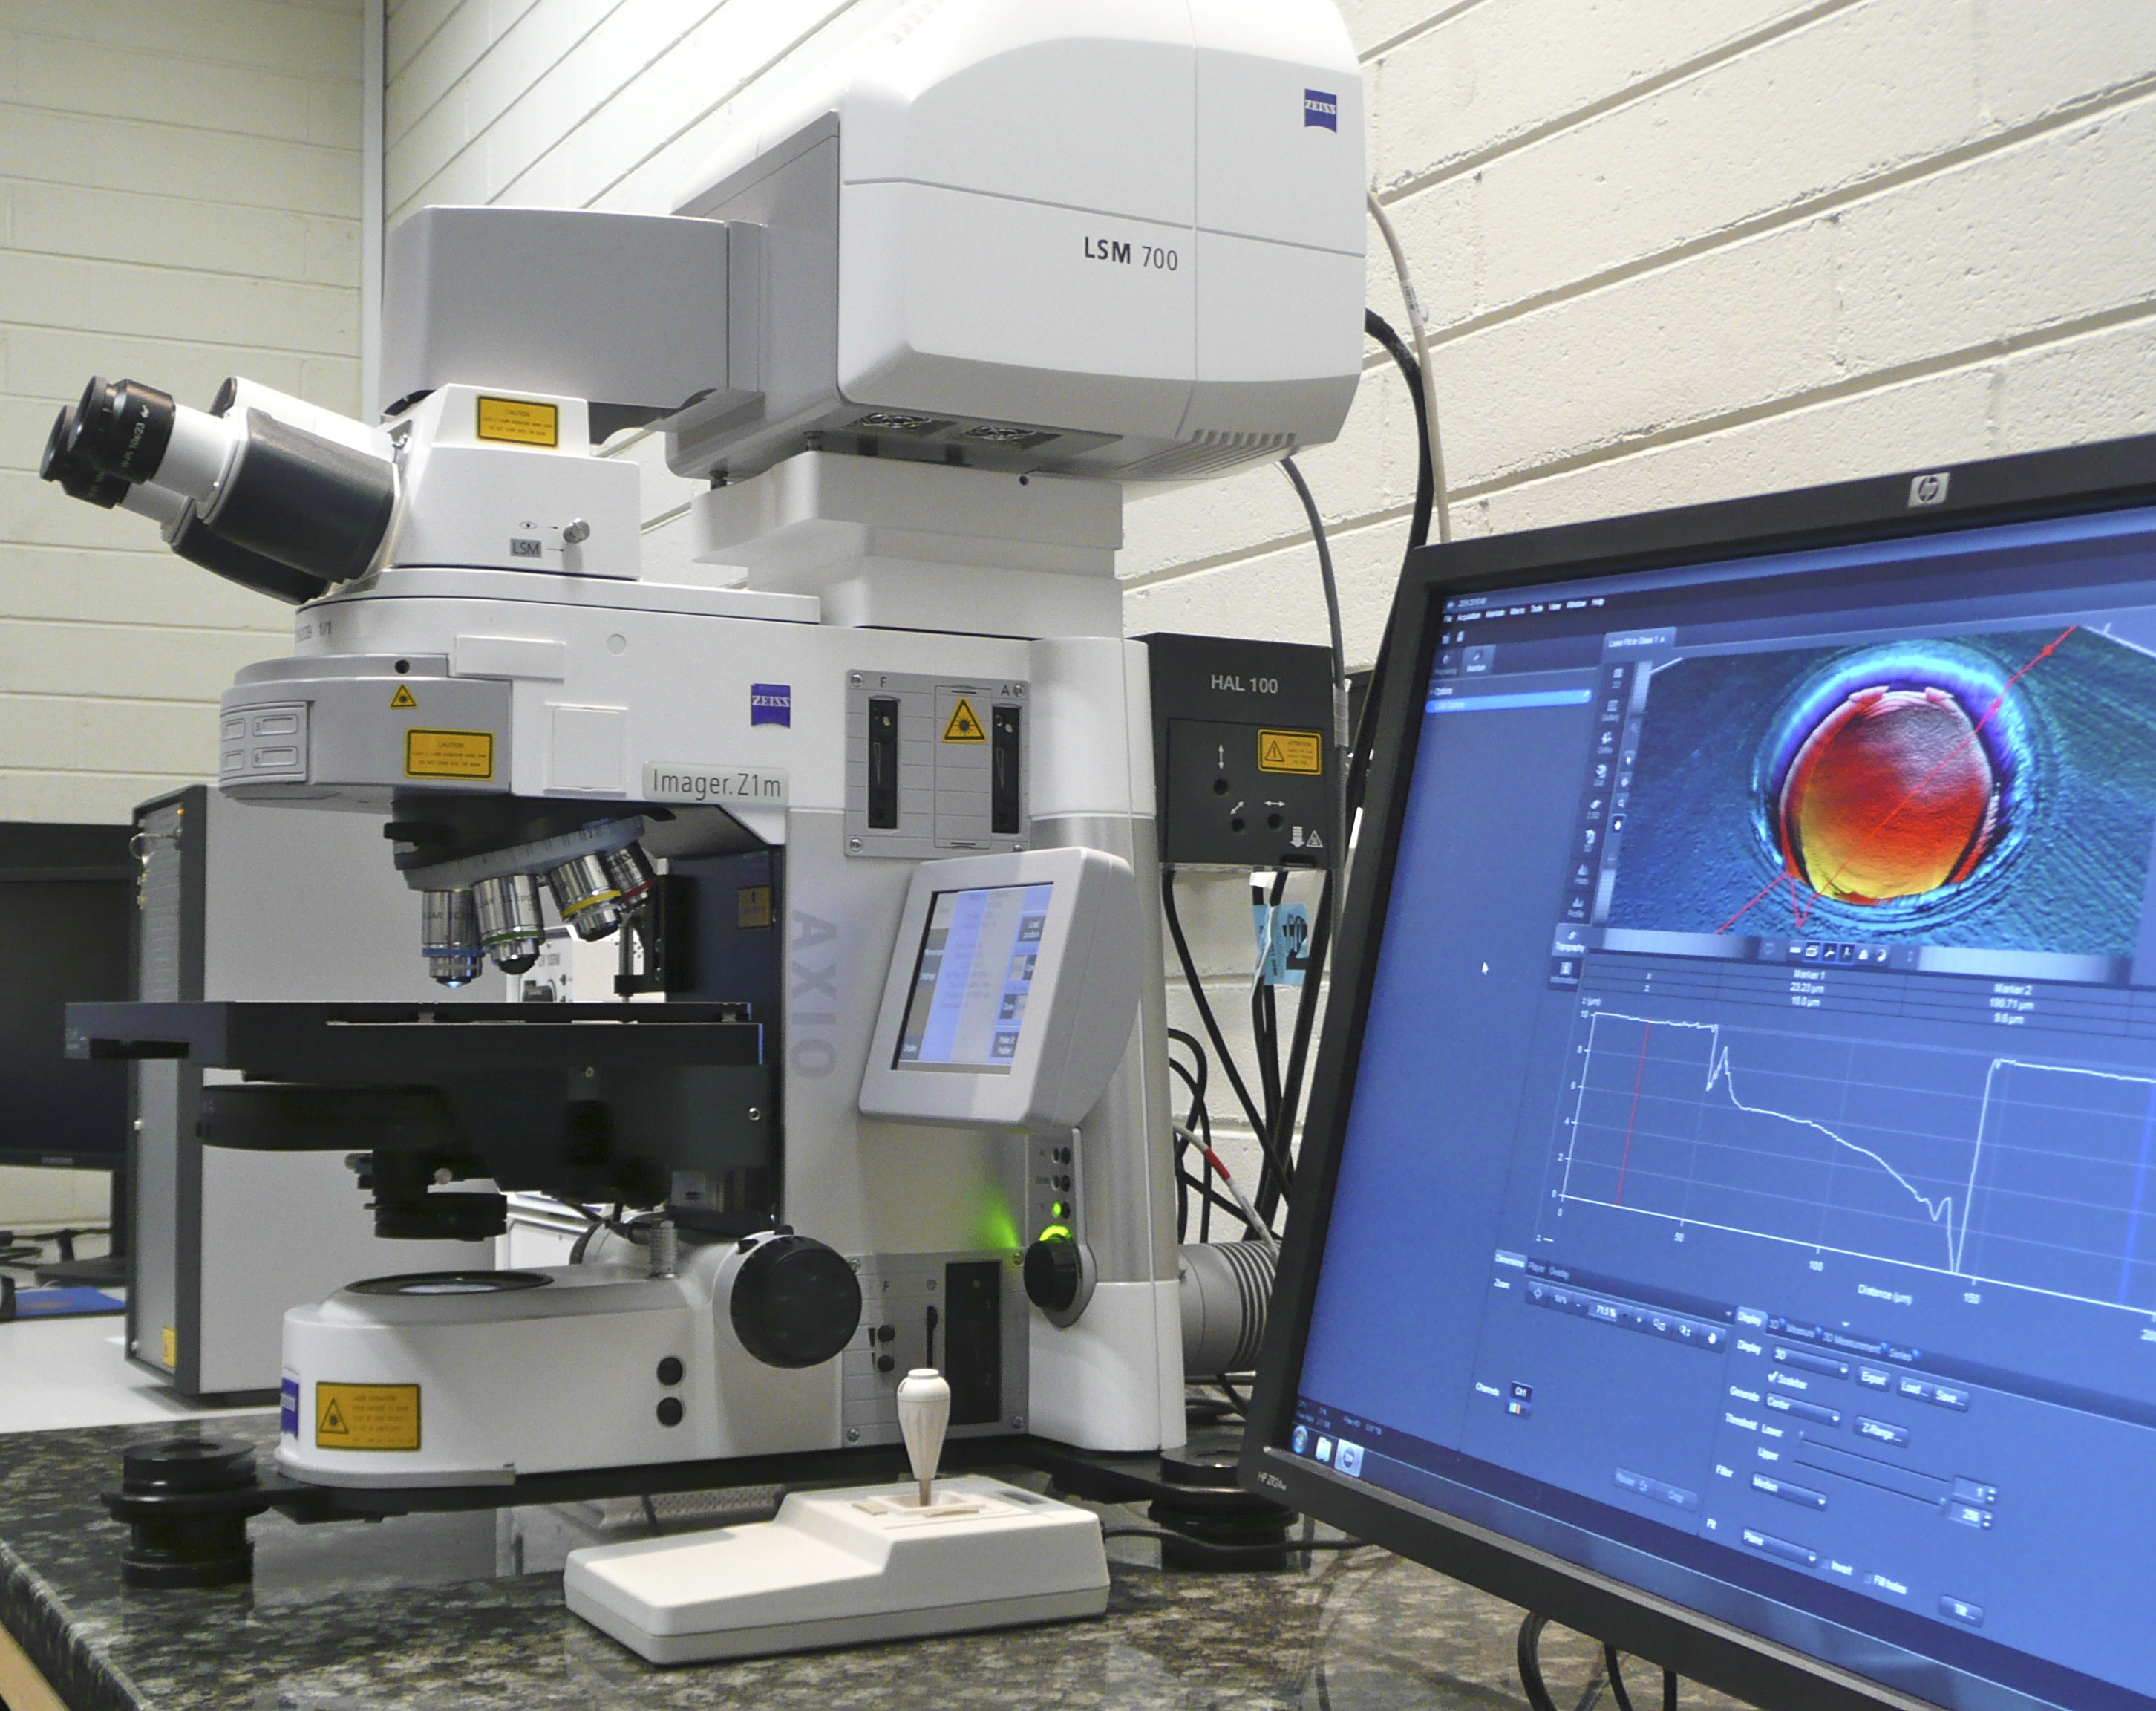 Zeiss Z1m Microscope with LSM700